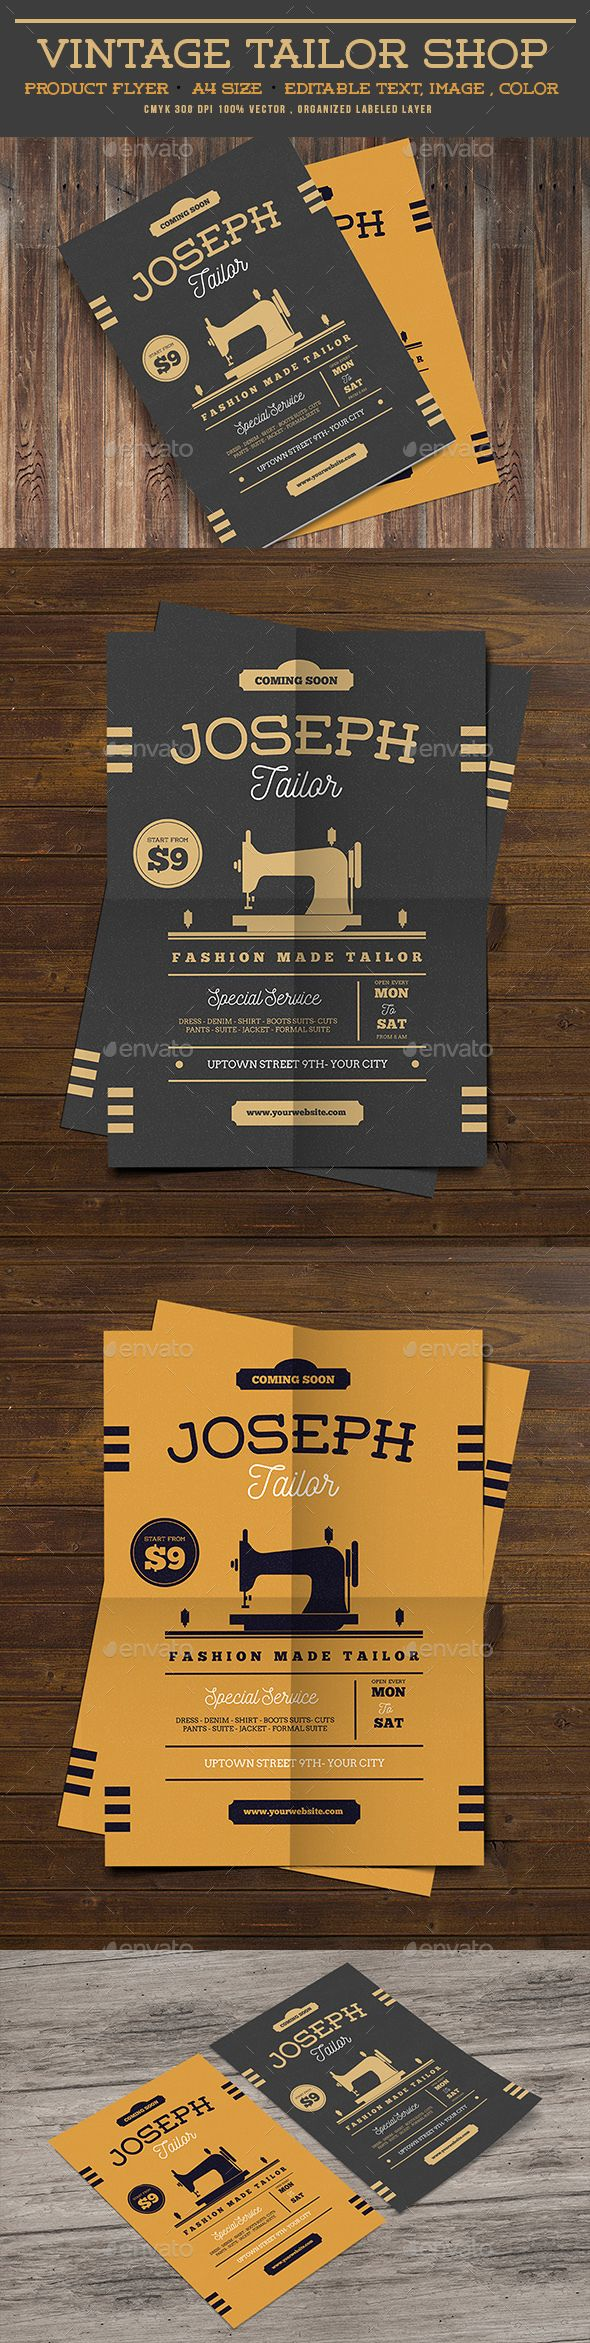 Vintage Tailor Shop Flyer  — PSD Template #fashion #Sewing Machine • Download ➝ https://graphicriver.net/item/vintage-tailor-shop-flyer/18377227?ref=pxcr